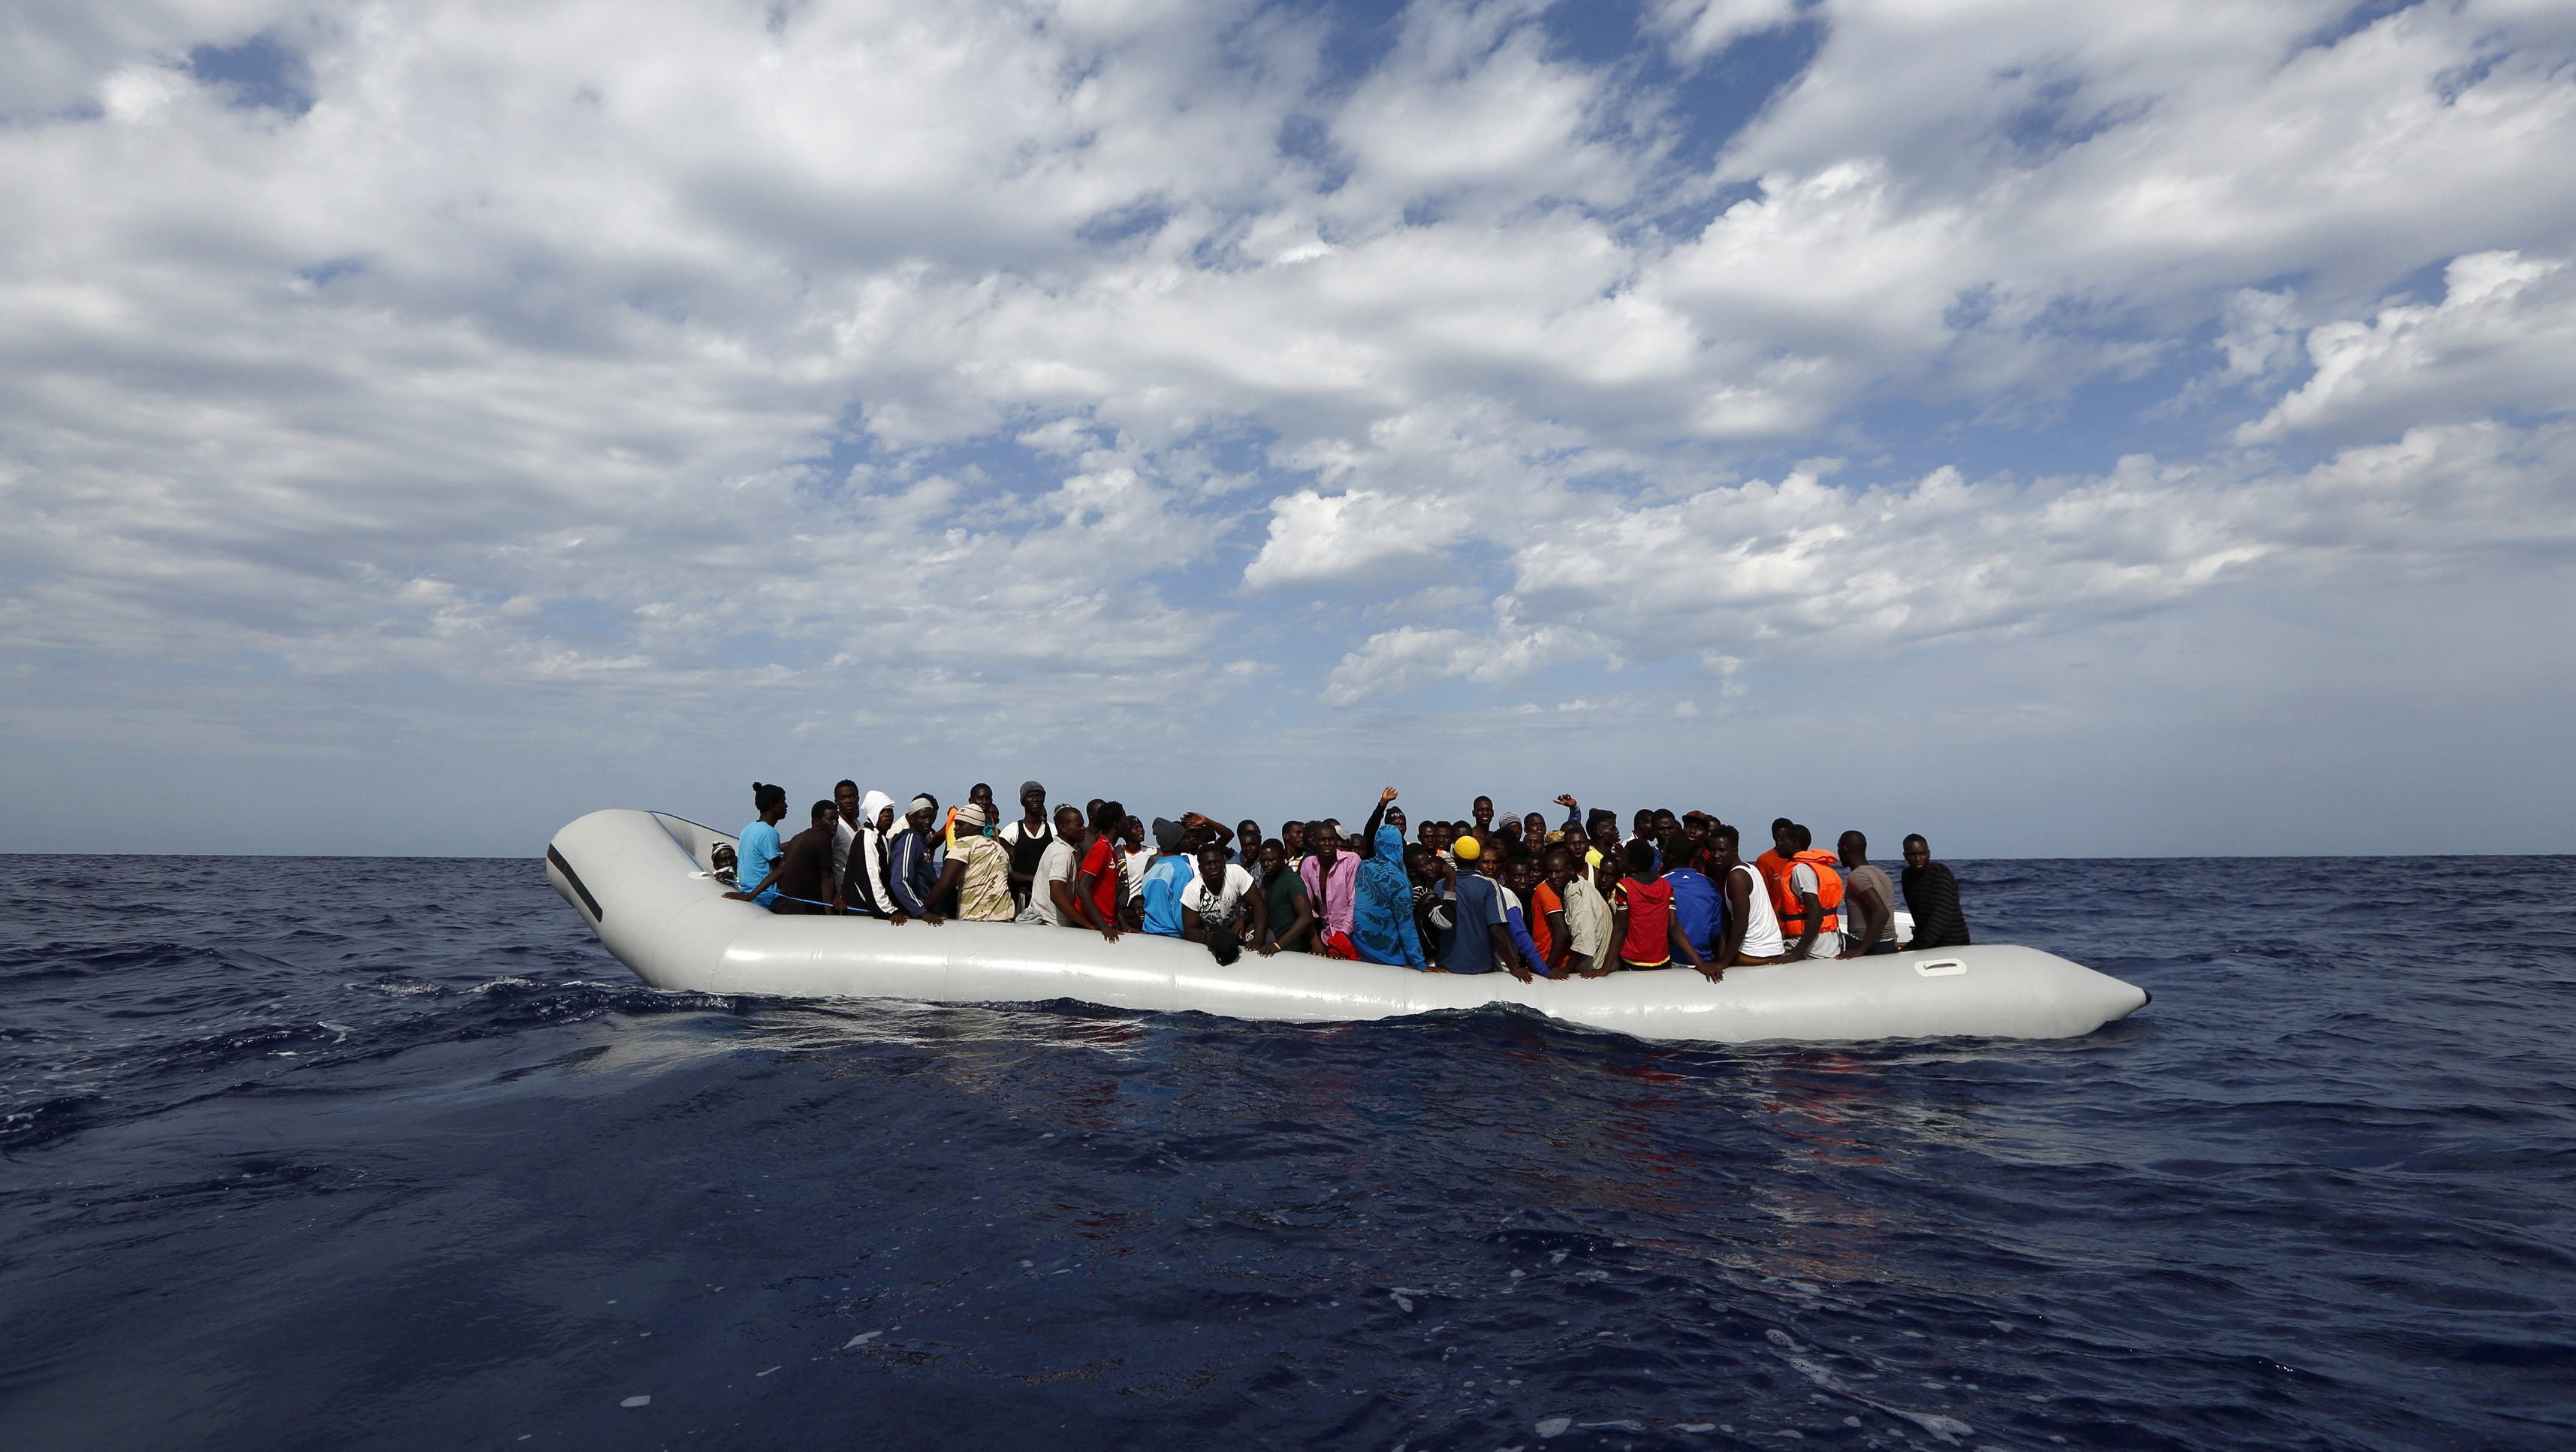 Handout photo shows 104 sub-Saharan Africans on board a rubber dinghy waiting to be rescued by the NGO Migrant Offshore Aid Station some 25 miles off the Libyan coast